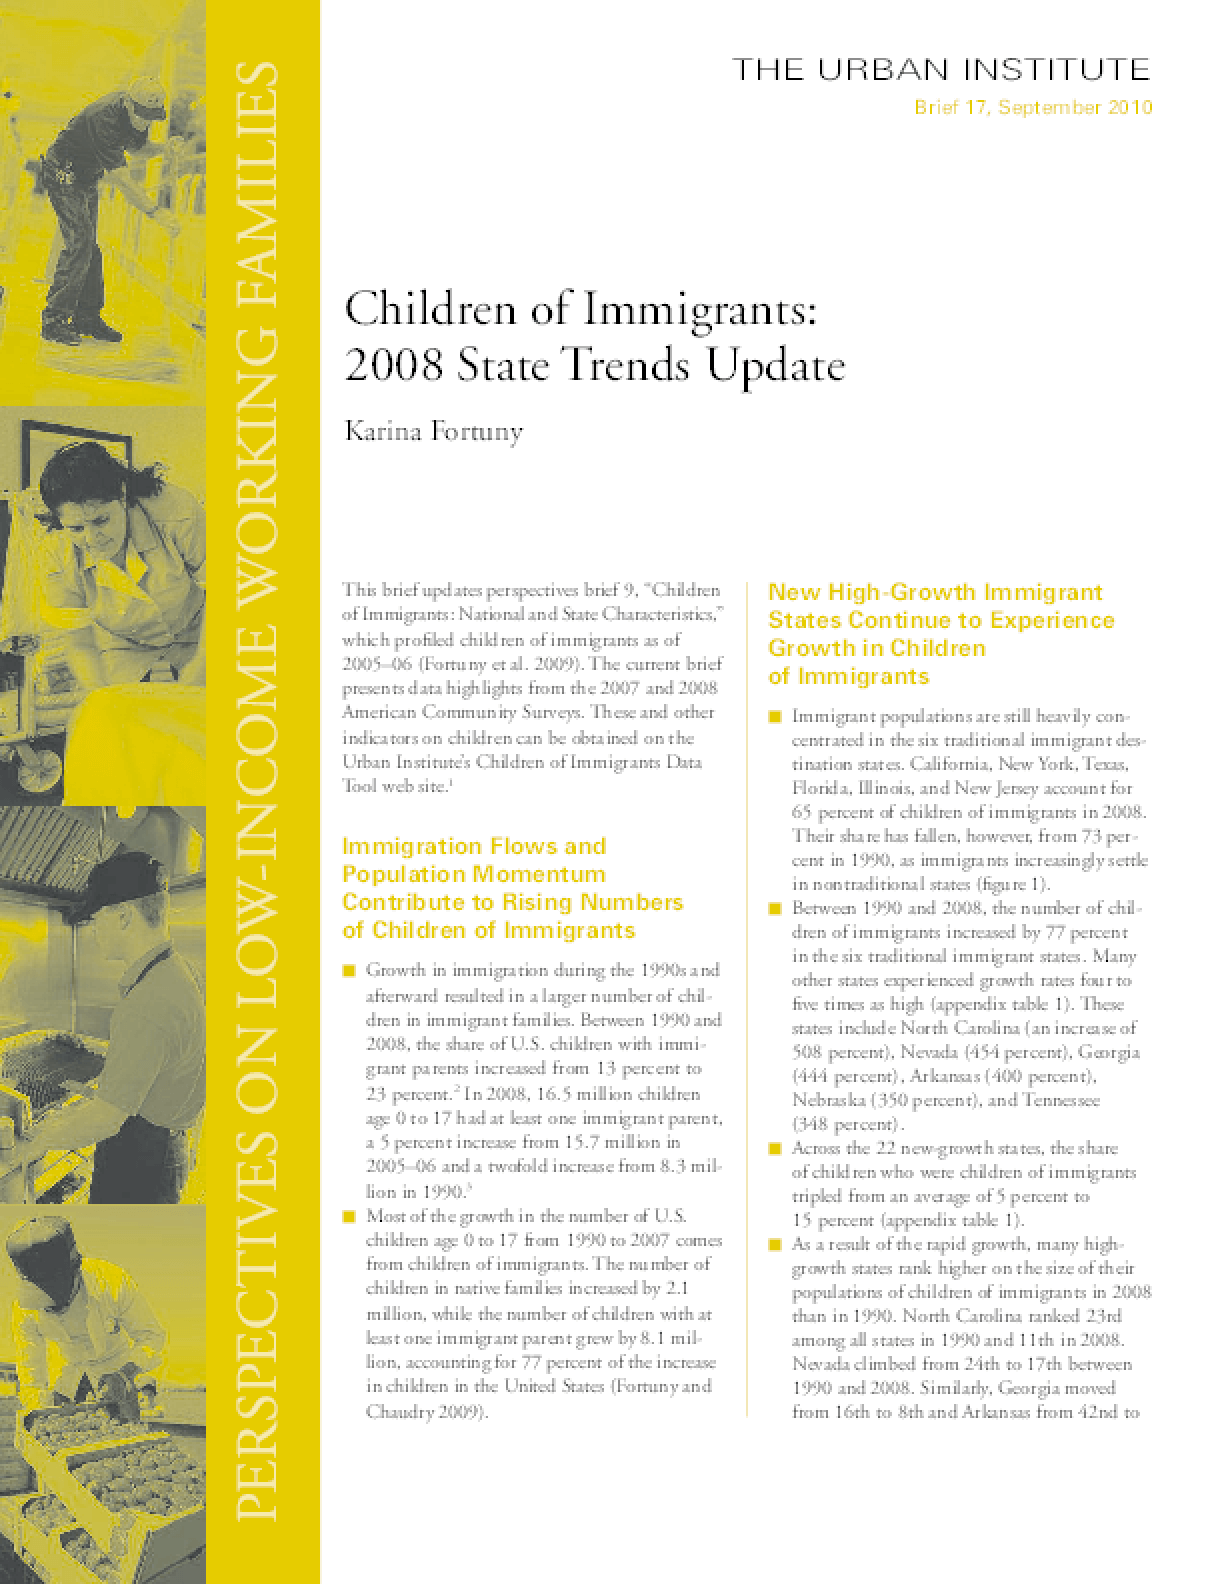 Children of Immigrants: 2008 State Trends Update